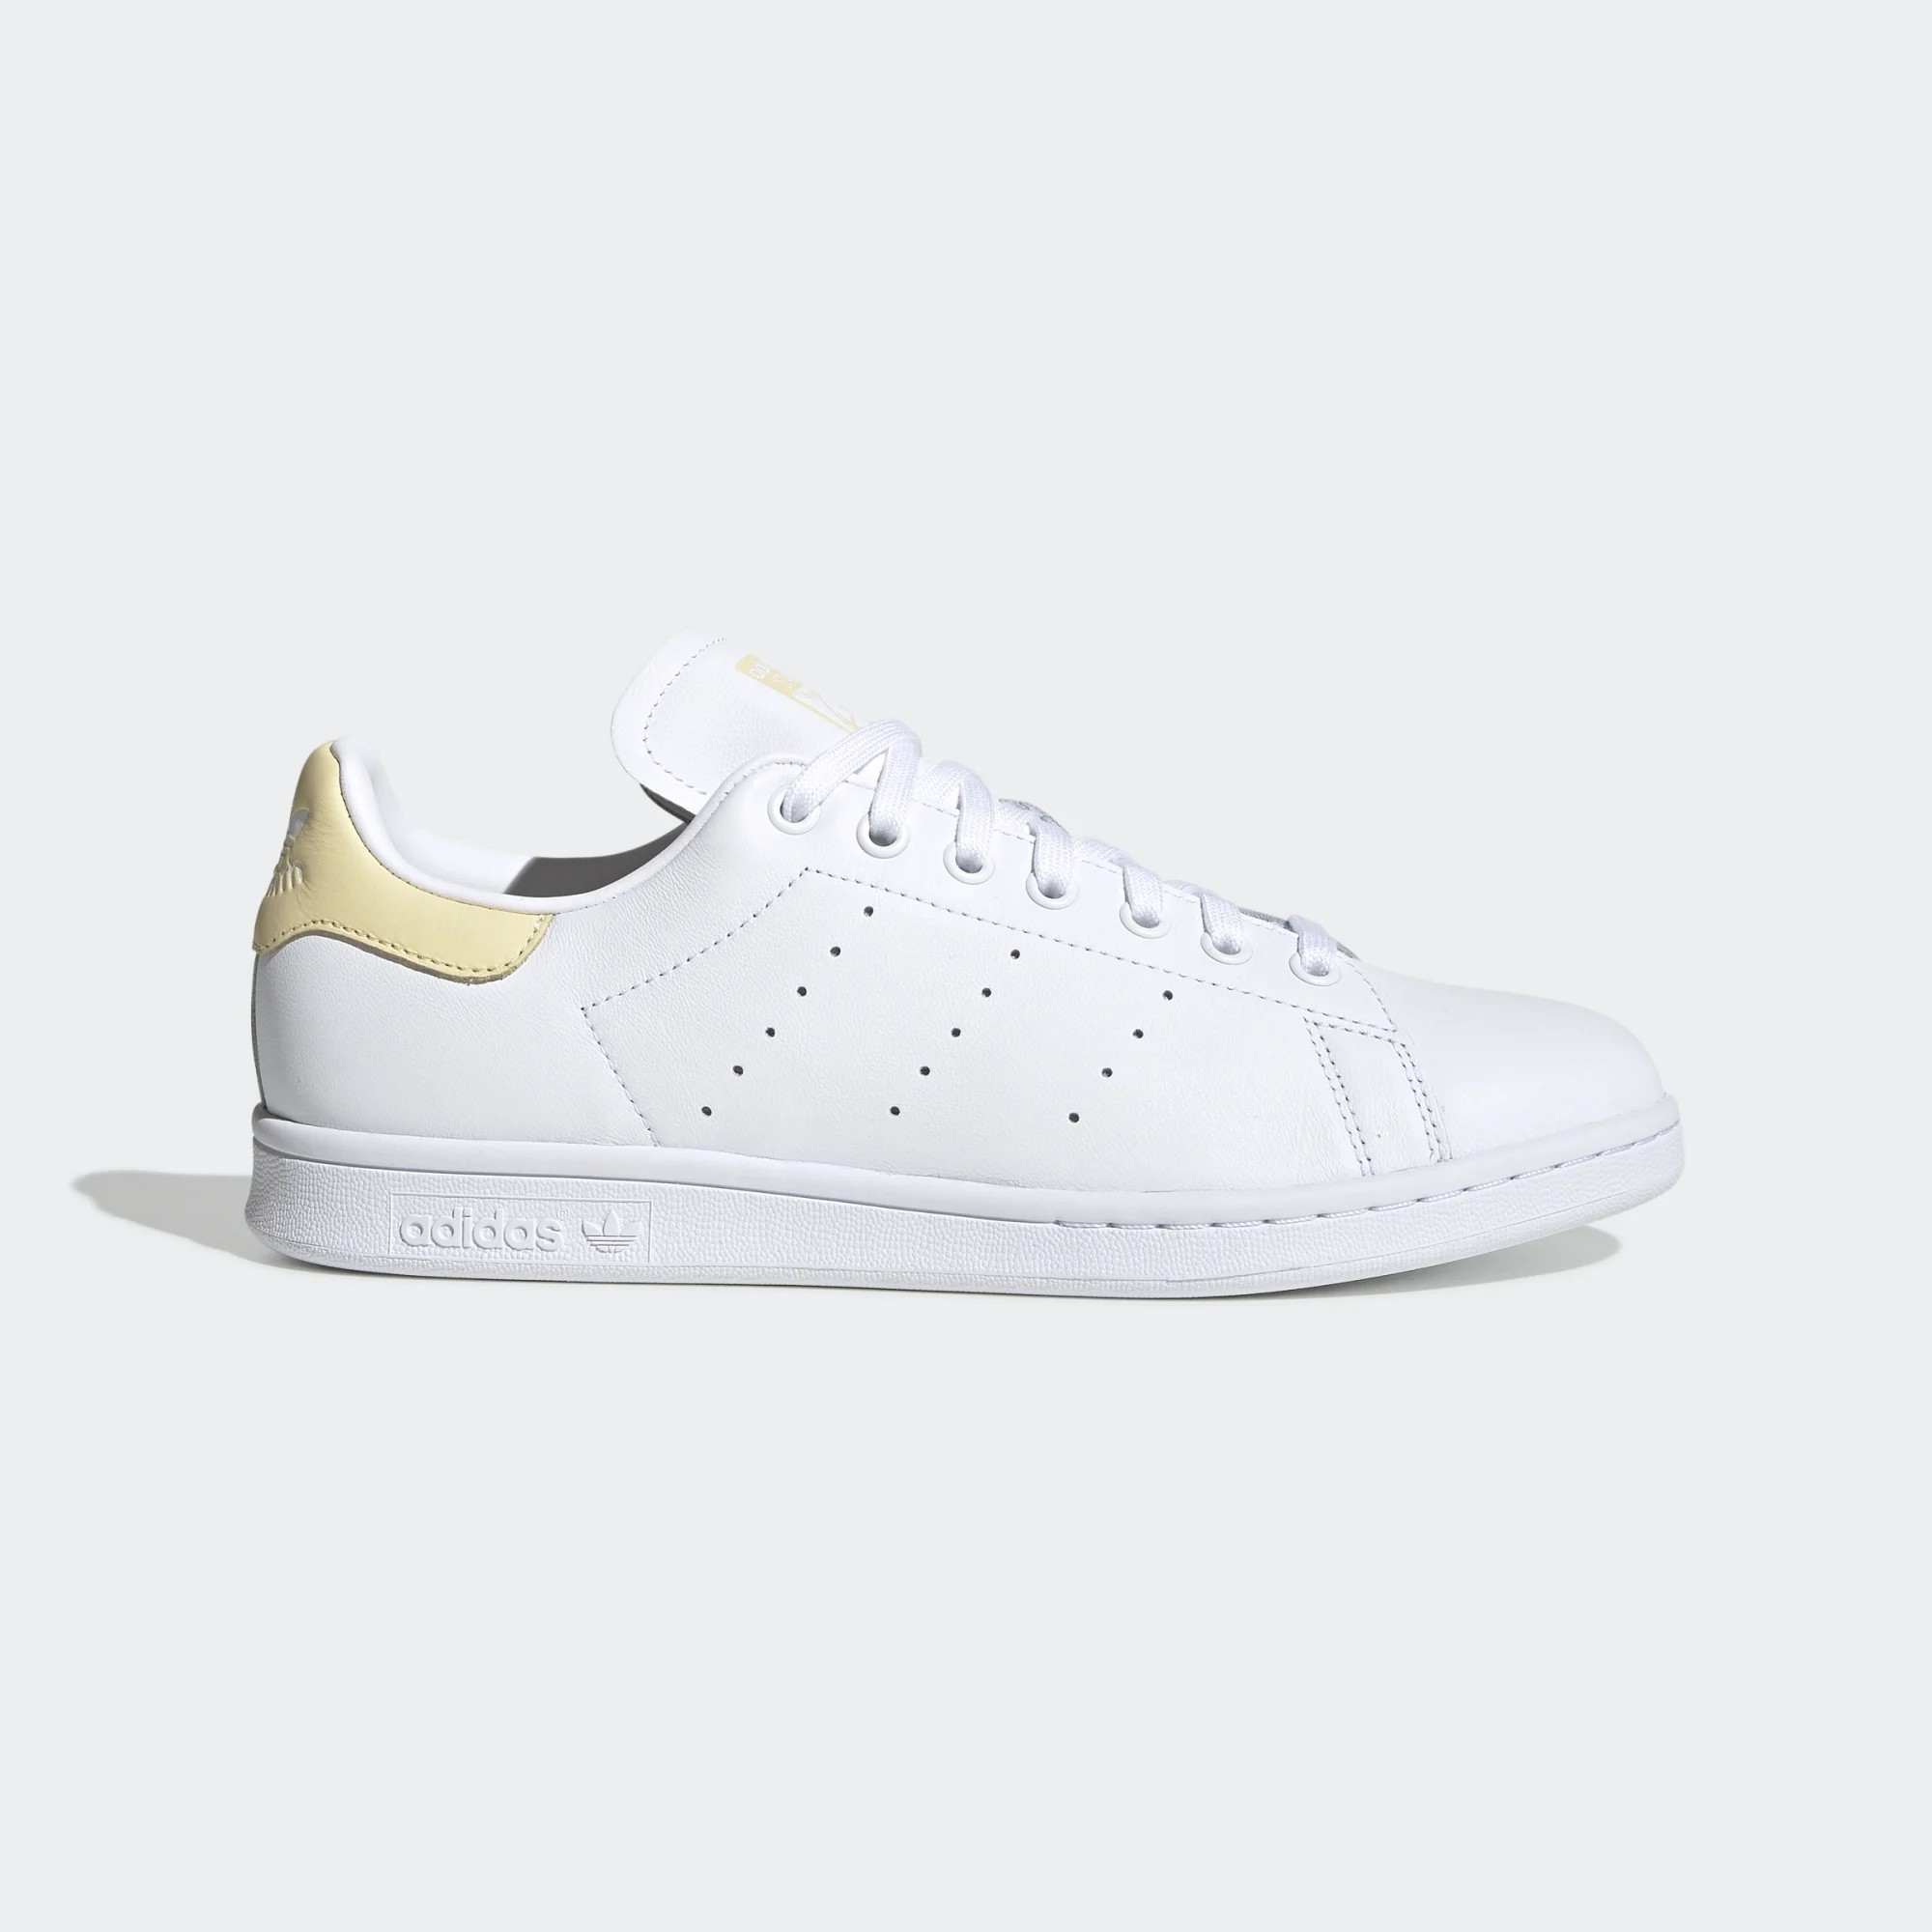 Adidas Stan Smith Blancas/Amarillas - EF4335